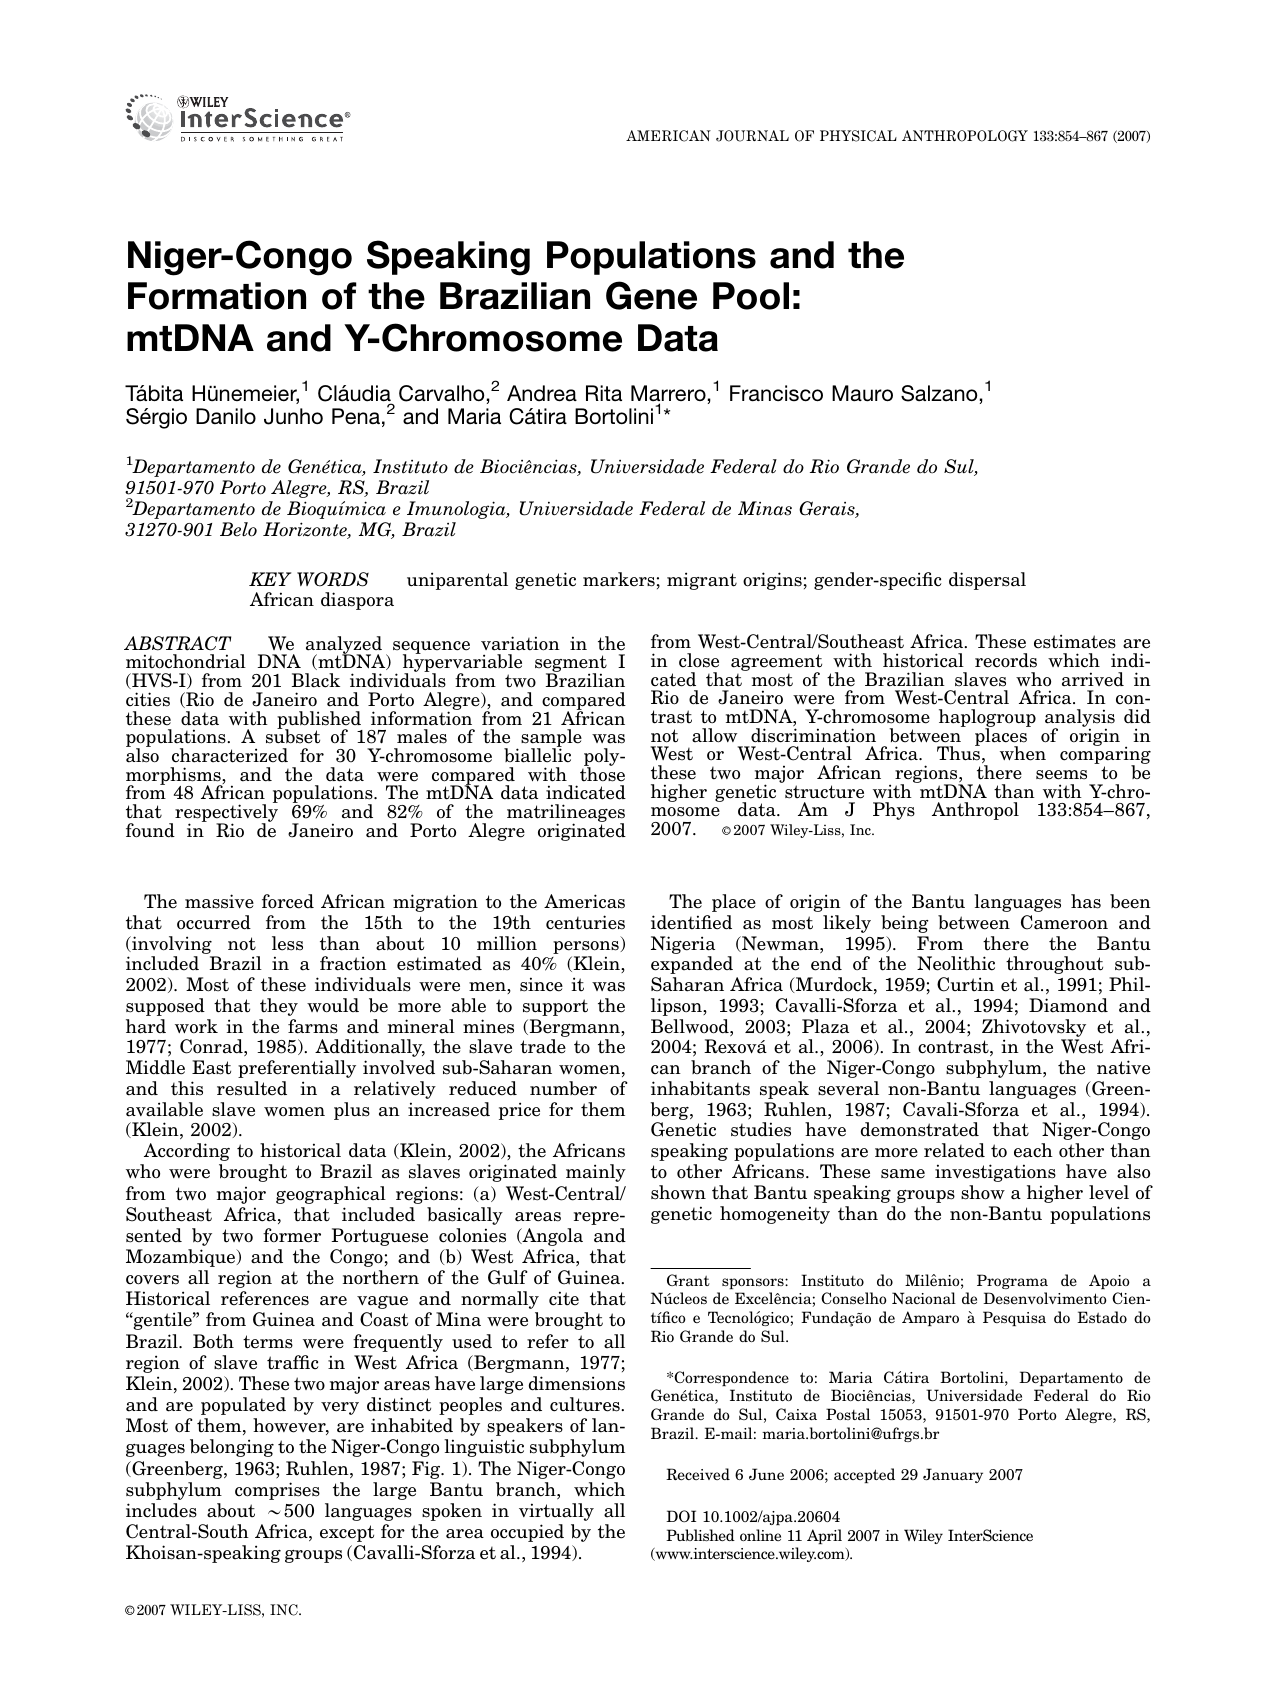 Niger-Congo speaking populations and the formation of the Brazilian